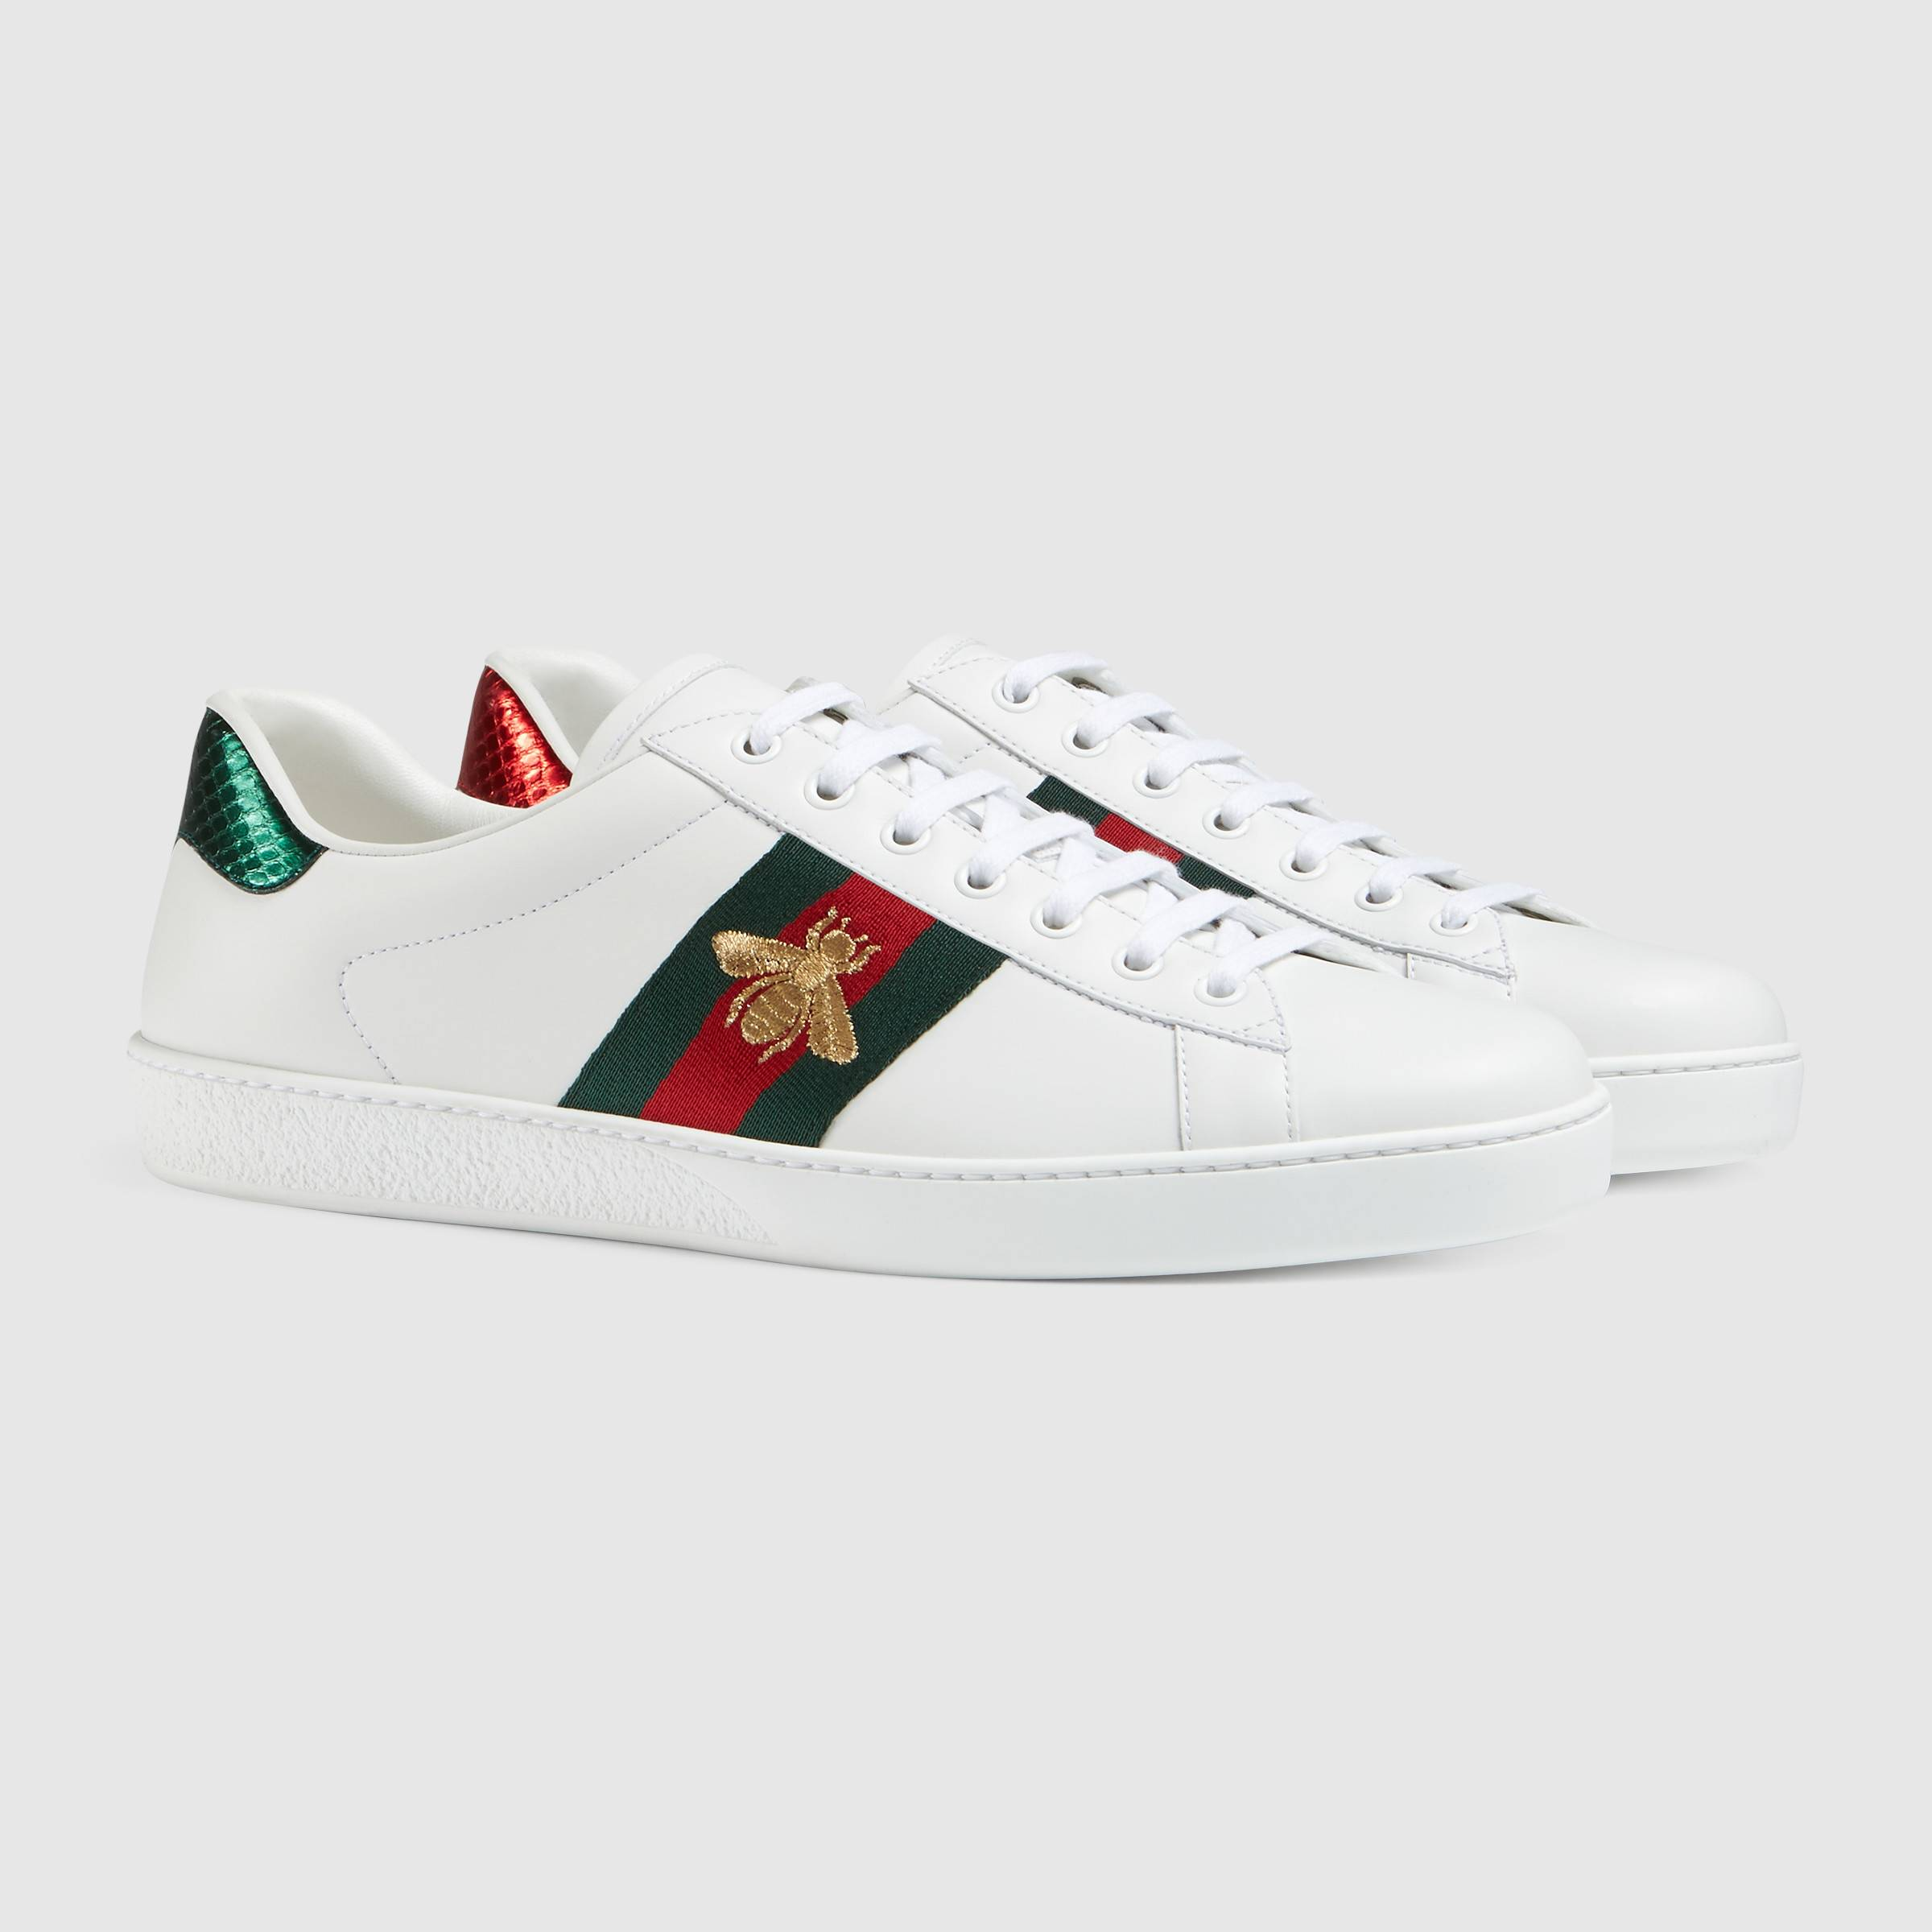 giay the thao tet 2019 - gucci ace sneaker monogram - elle man 7